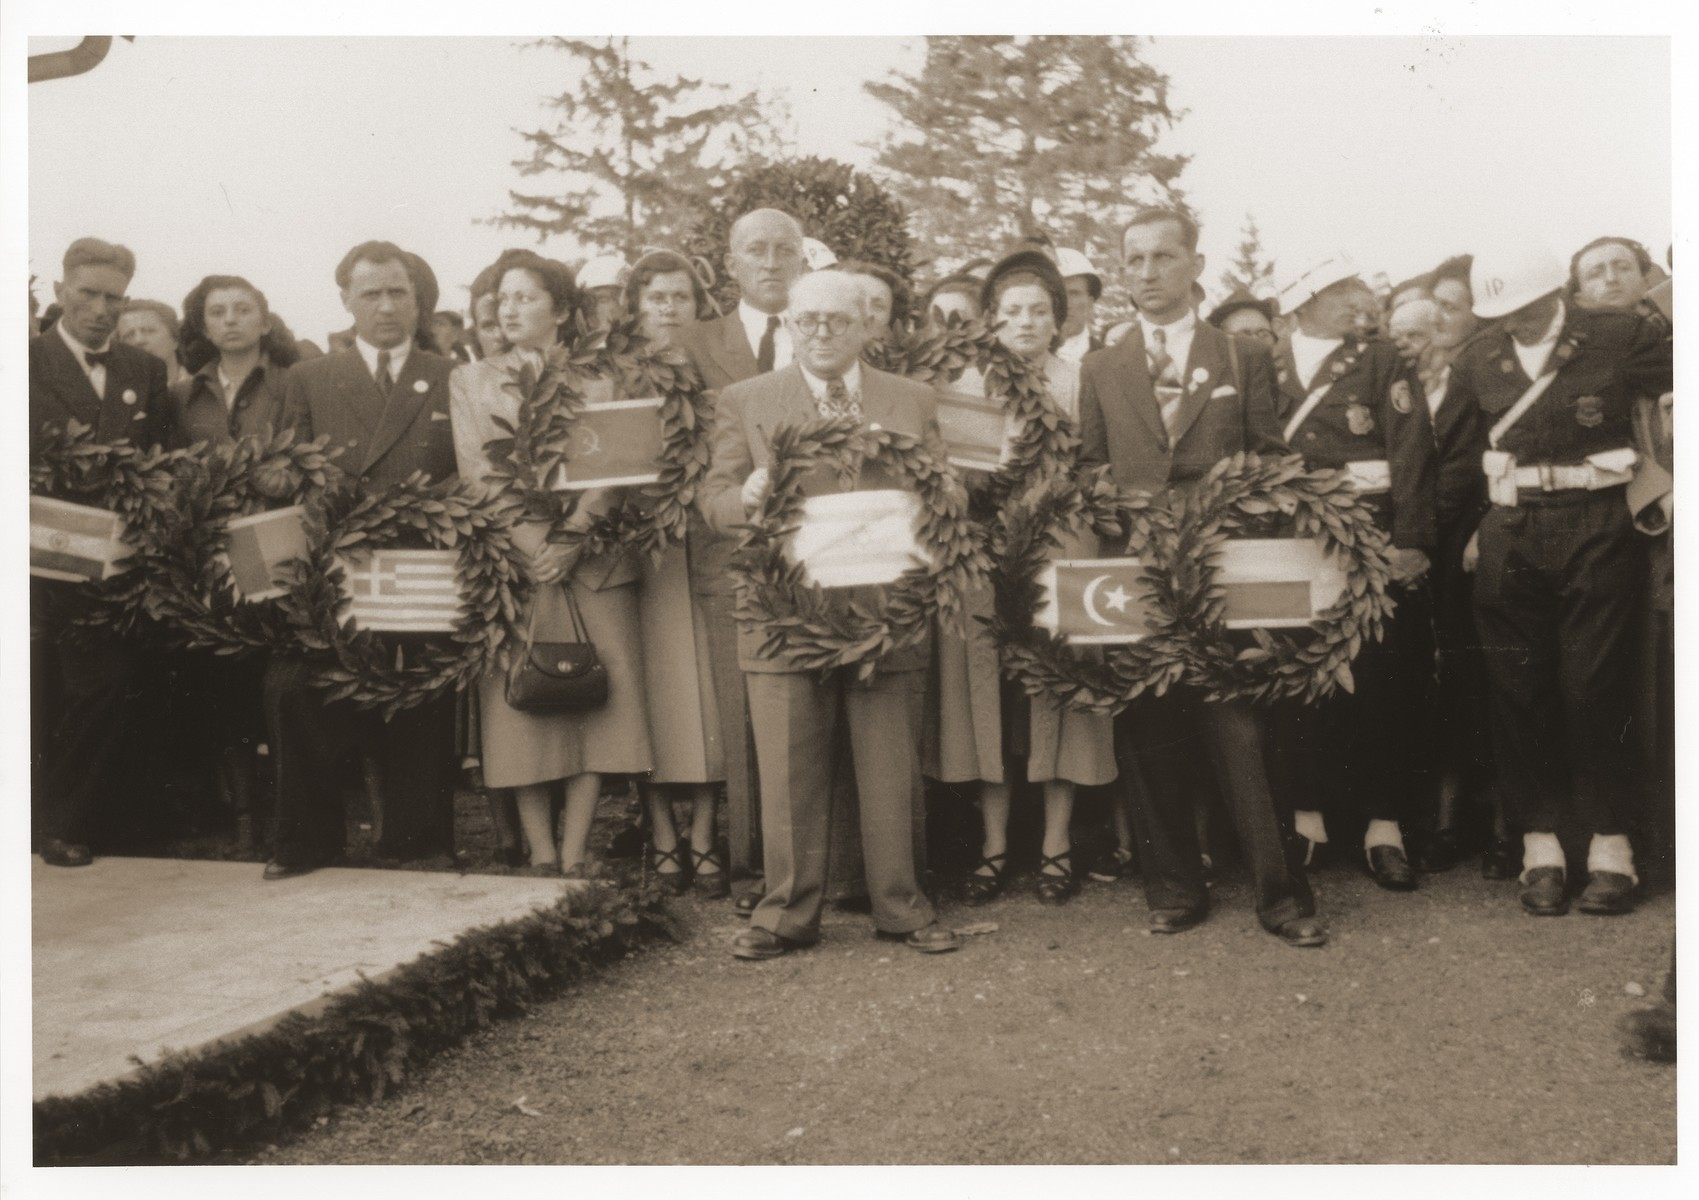 Foreign dignitaries bearing wreaths participate in a memorial ceremony at the Dachau concentration camp.